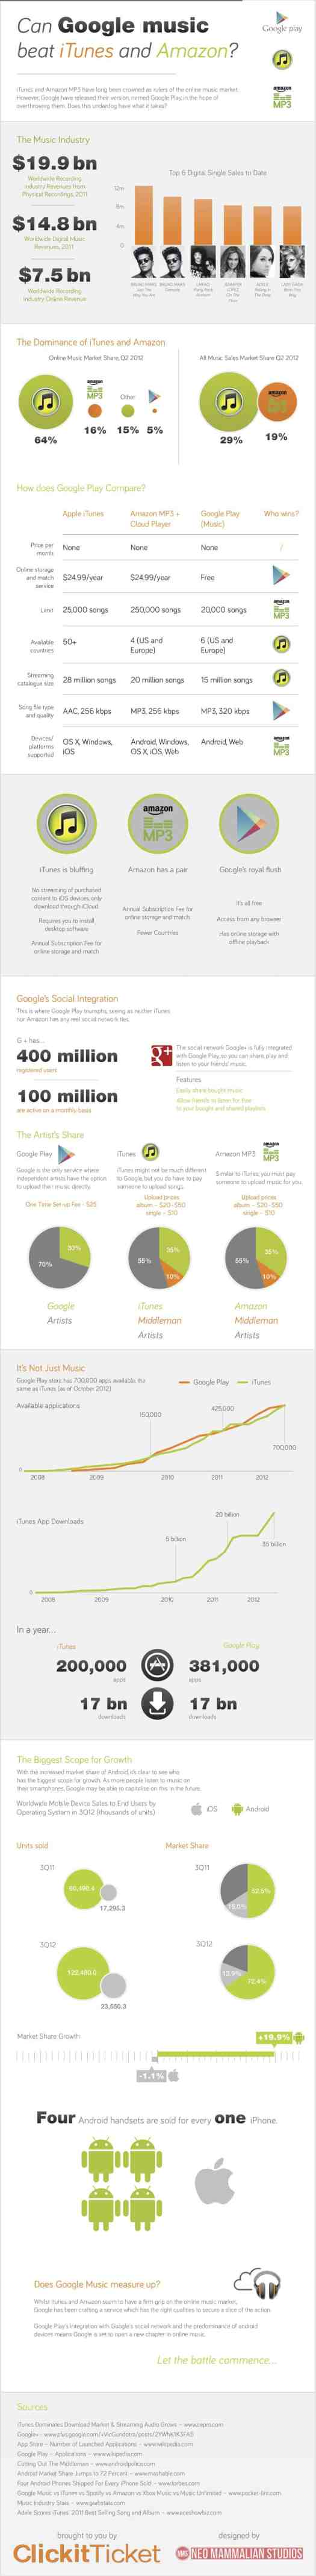 Google Play vs. ITunes and Amazon